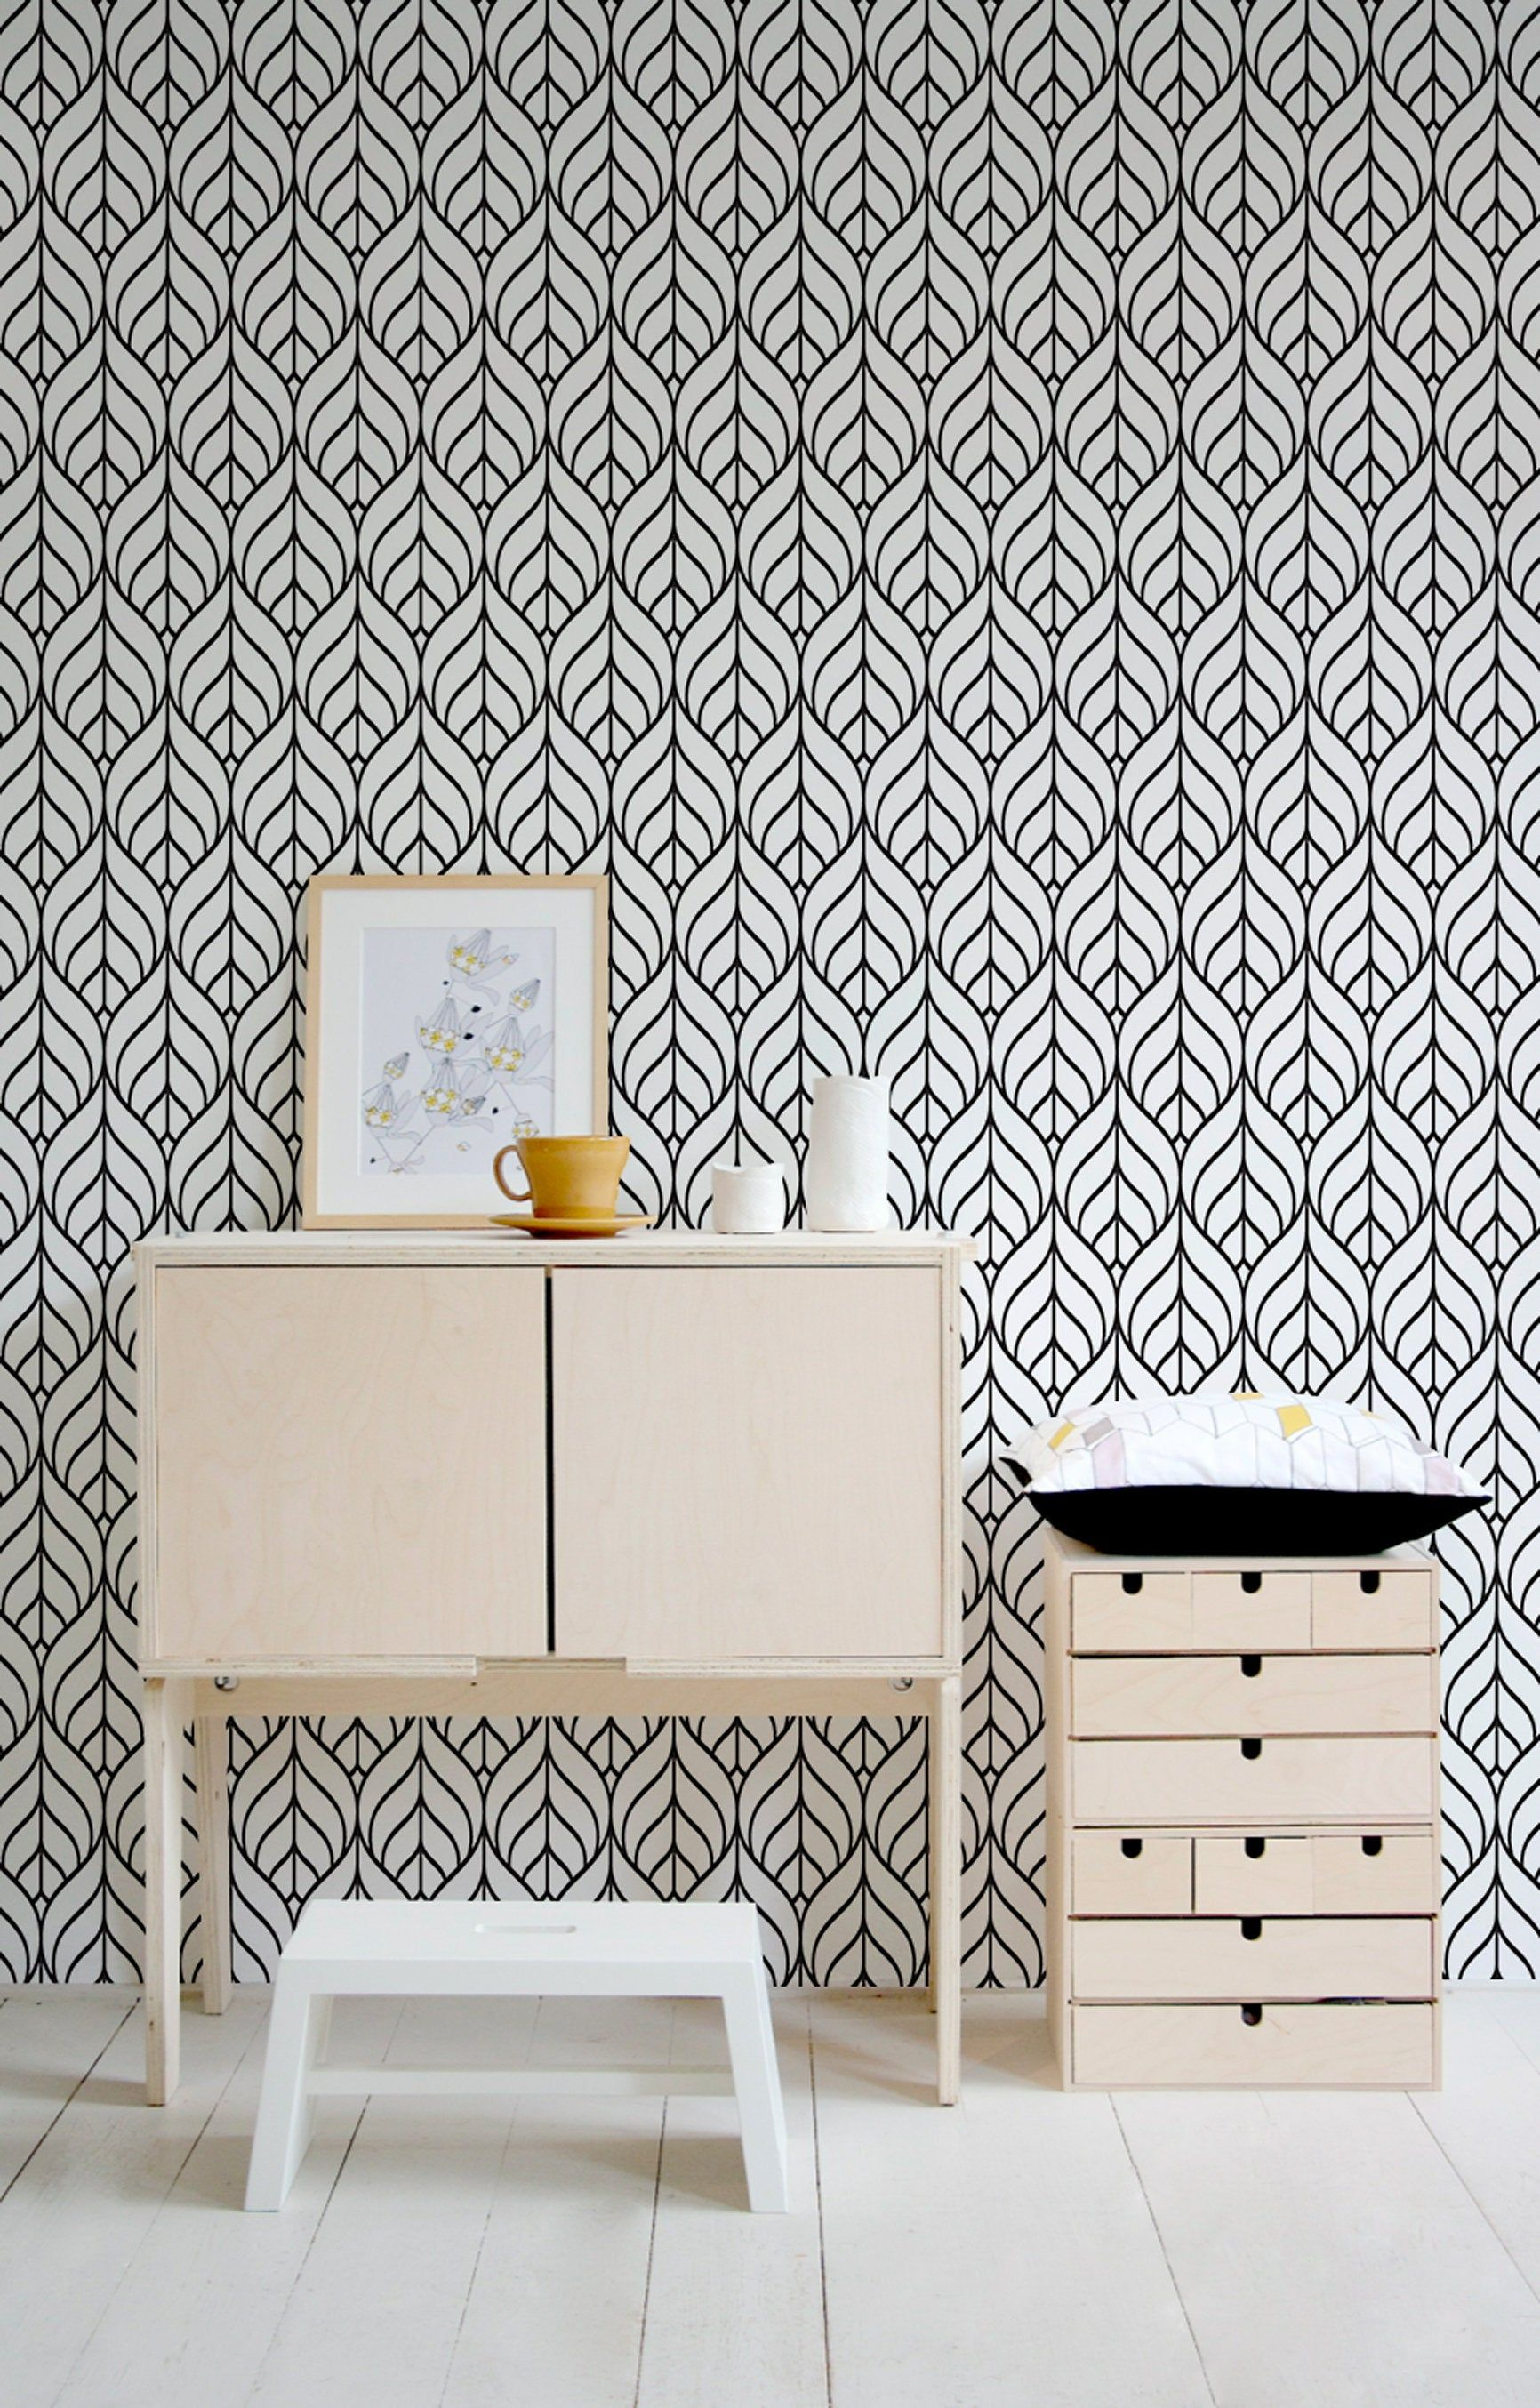 Removable Wallpaper Peel And Stick Wallpaper Wall Paper Wall Mural A134 Removable Wallpaper Peelable Wallpaper Peel And Stick Wallpaper